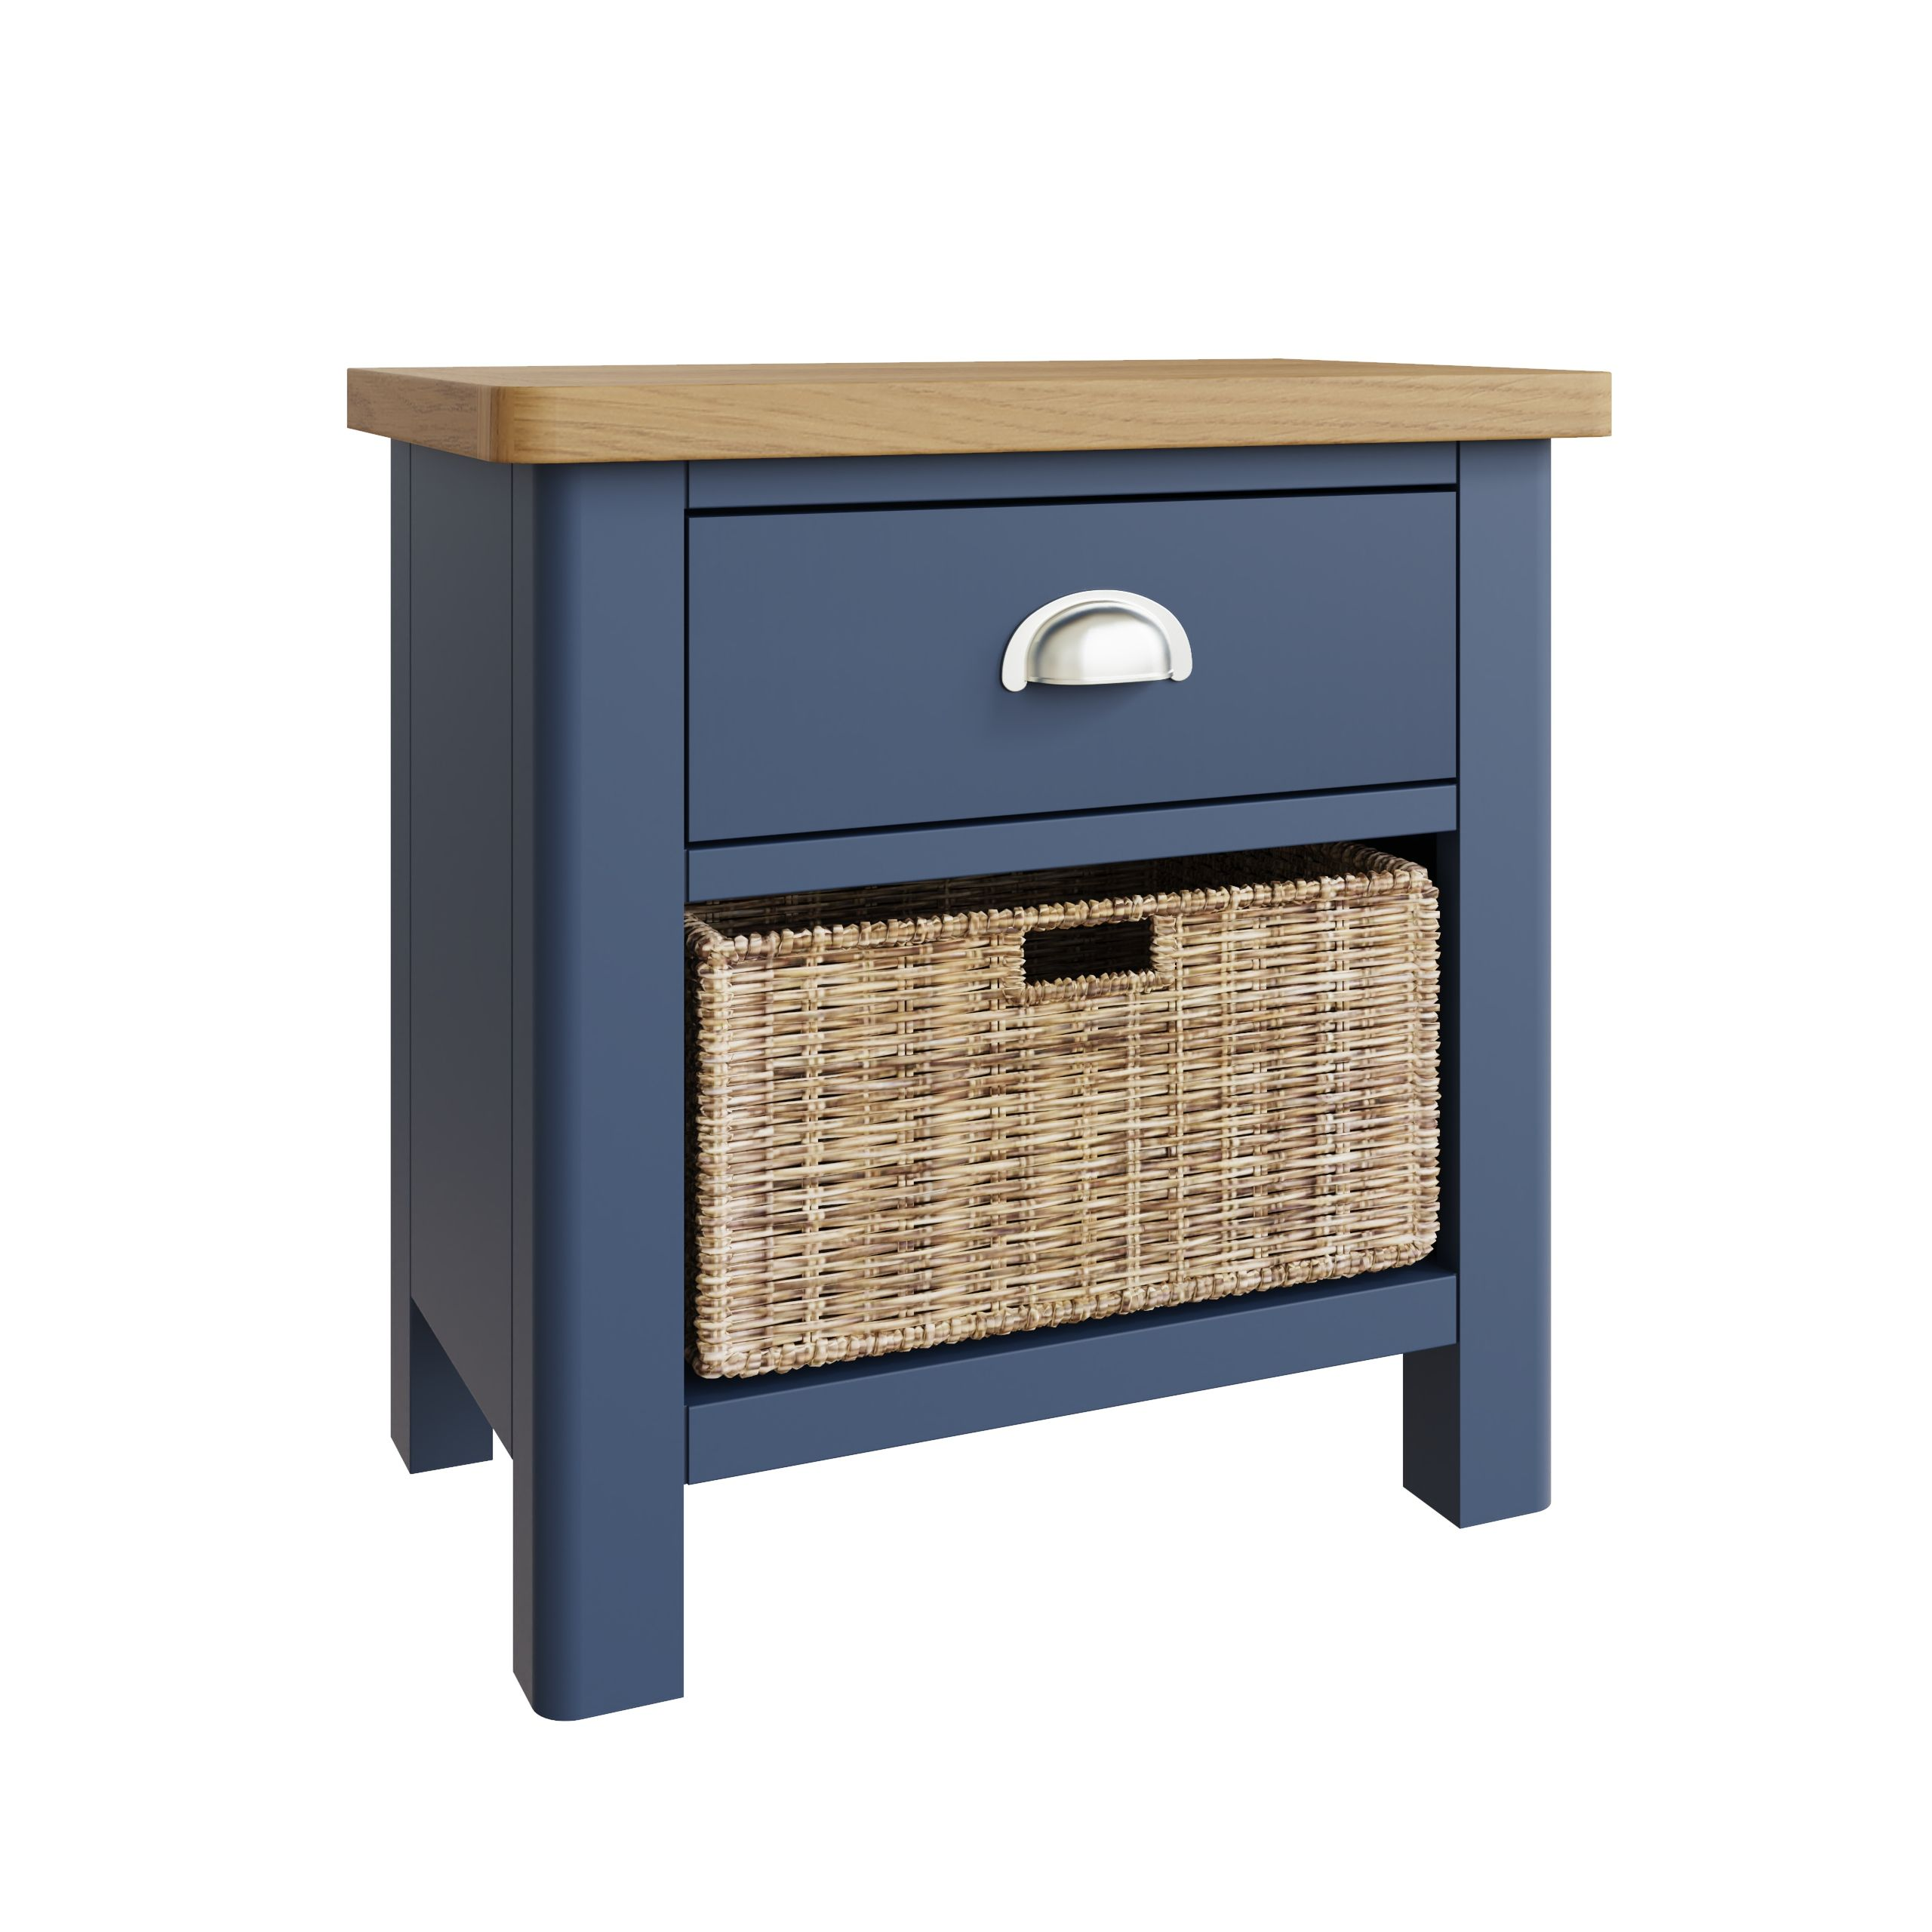 RAYWELL Painted 1 Drawer 1 Basket (Blue)